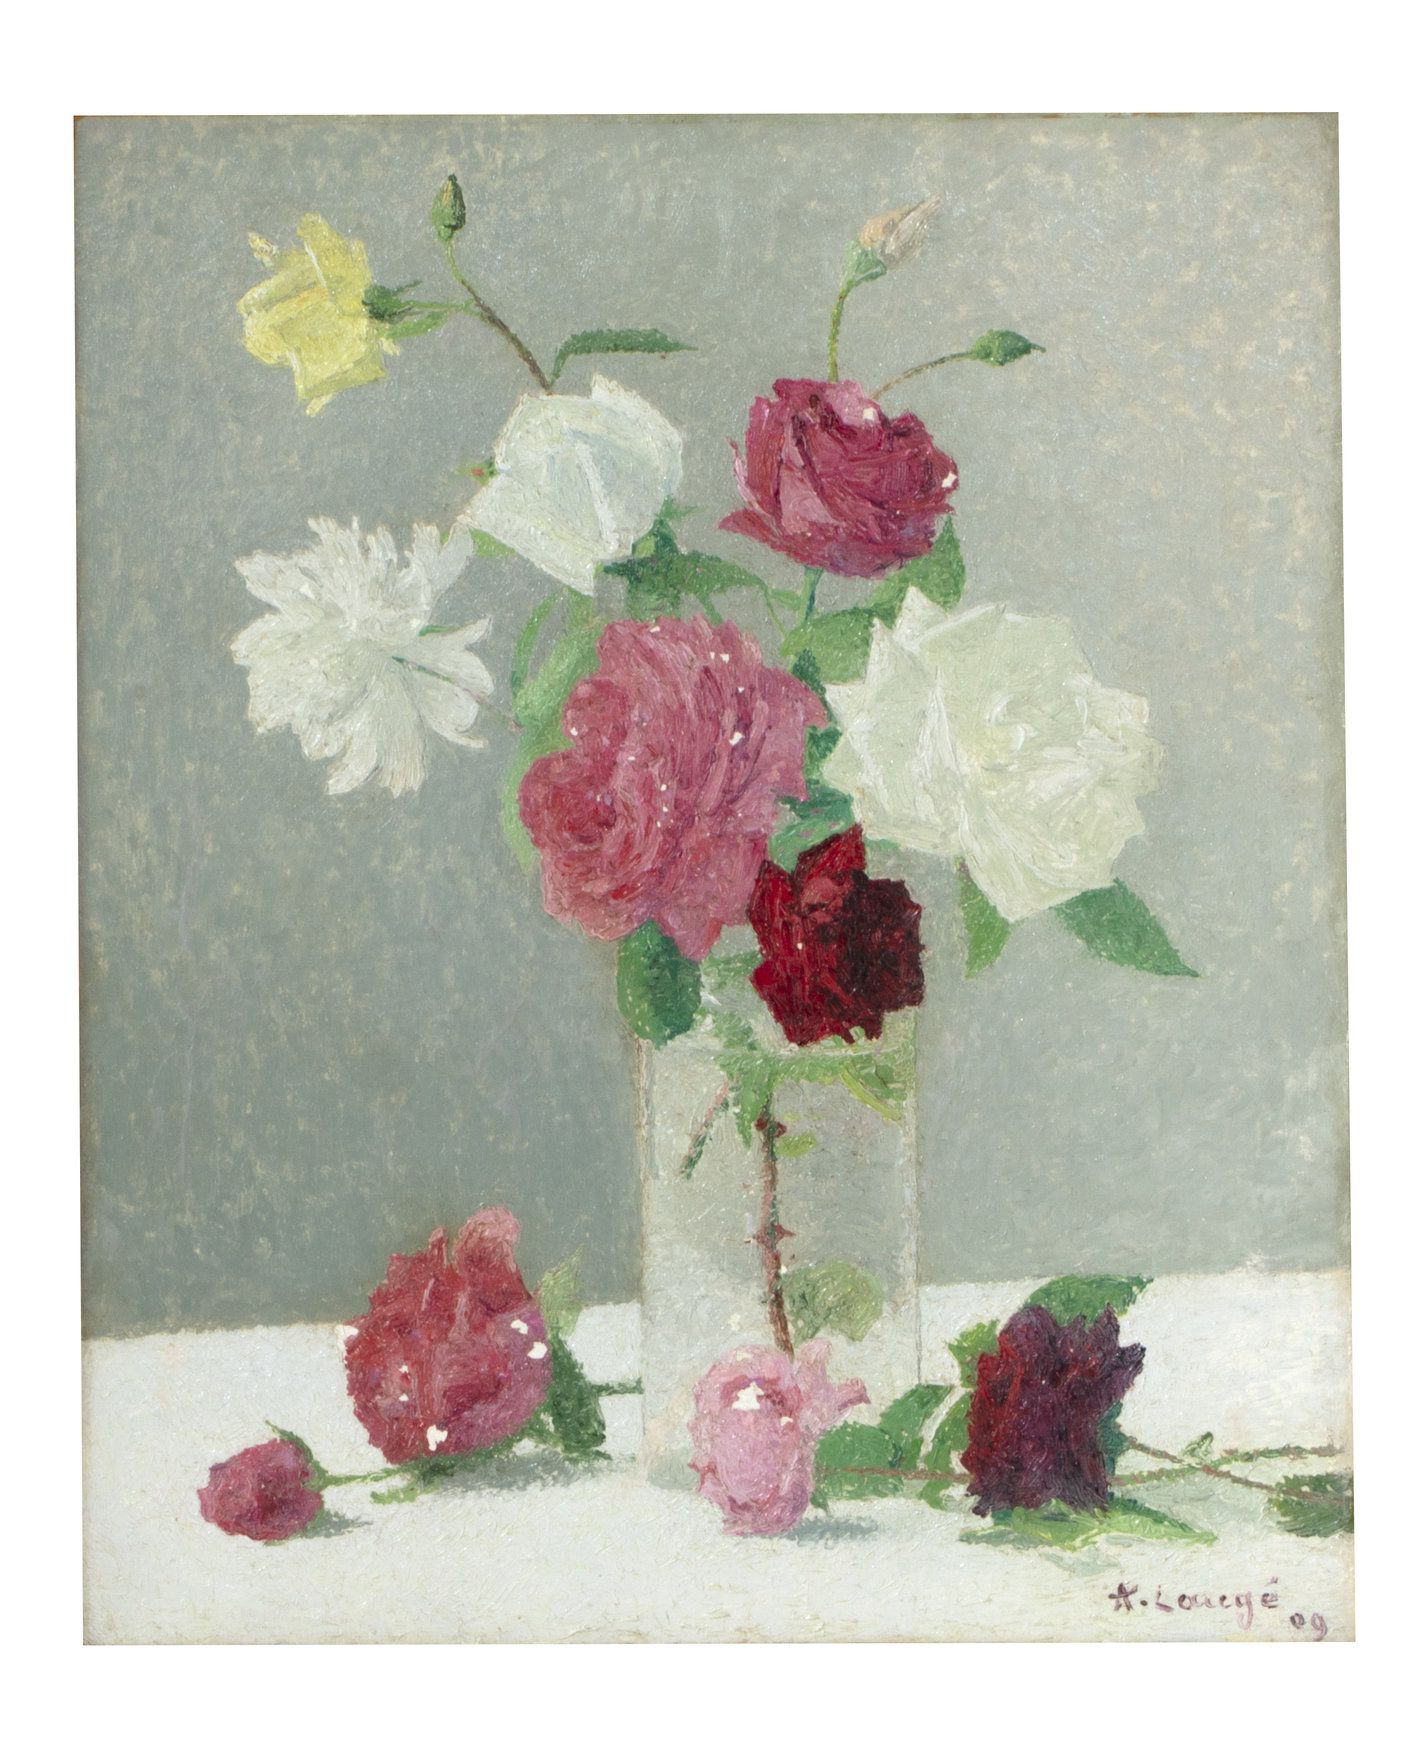 Oil on canvas by Achille Laugé (French, 1861-1944), titled Nature Morte au Bouquet de Roses, signed and dated 'A. Laugé' lower right (est. $7,000-$9,000).